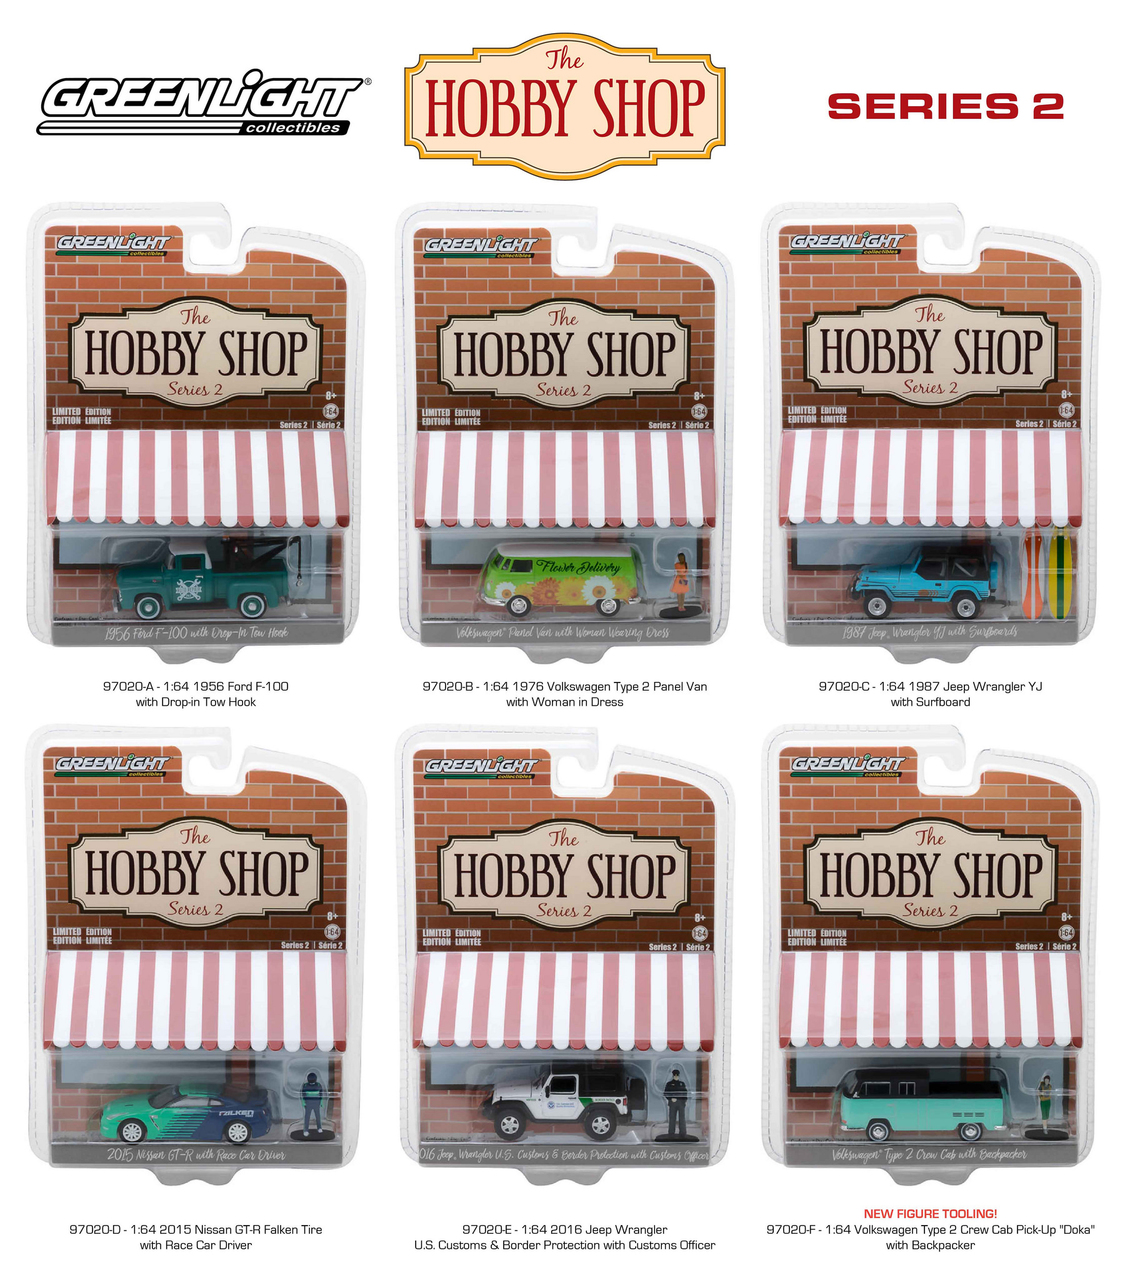 Image Purchase USA Misc. Greenlight The Hobby Shop Series 2 6pc Set 1/64 Diecast Model Cars by Greenlight wvfazoqpz 97020 Toys/Games